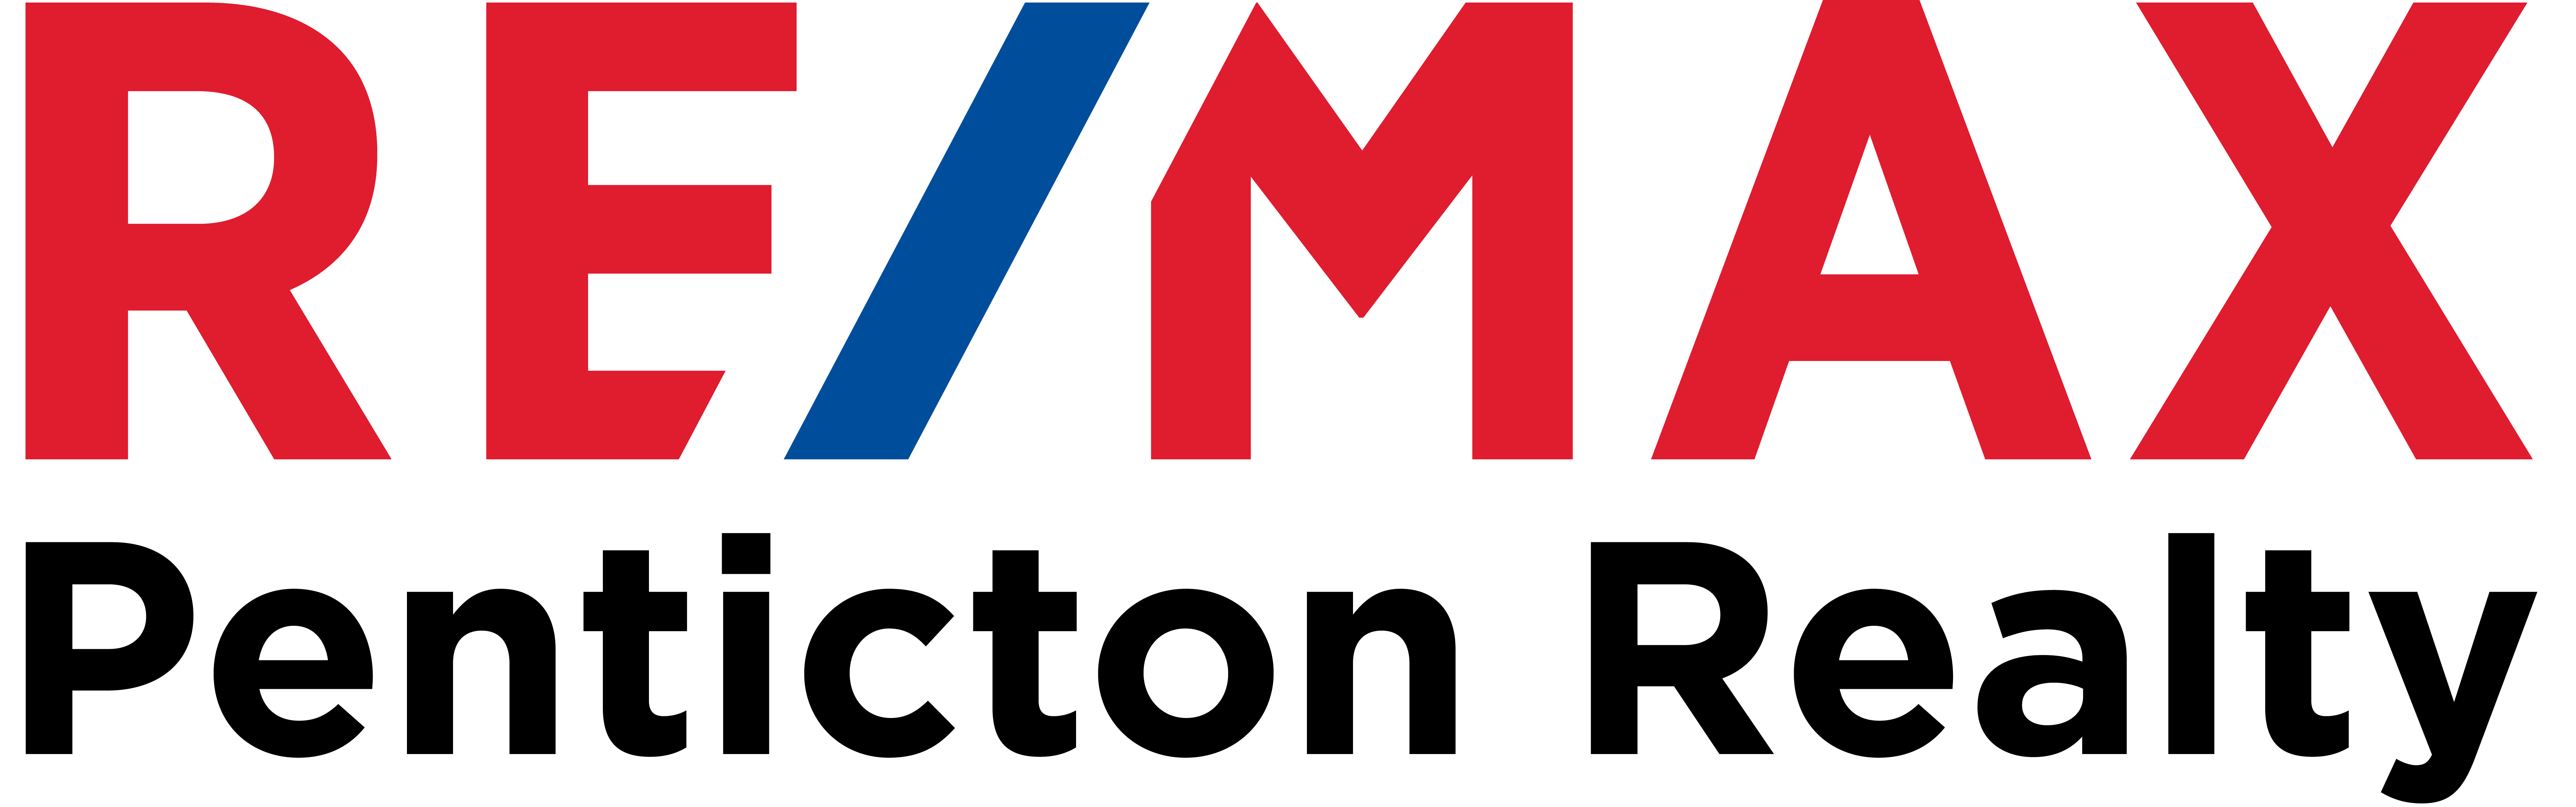 RE/MAX Penticton Realty